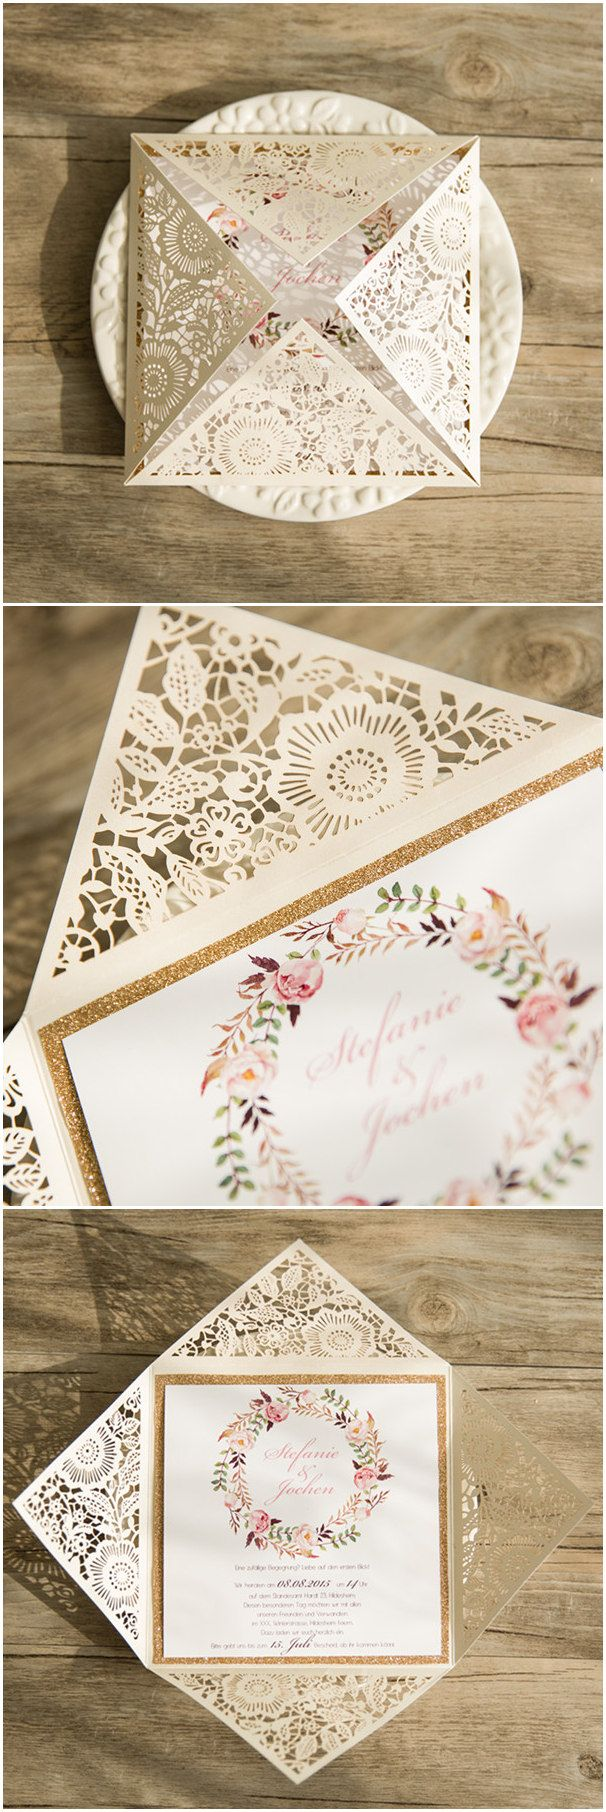 chic floral laser cut wedding invitations with a touch of sparkle for boho themed wedding ideas